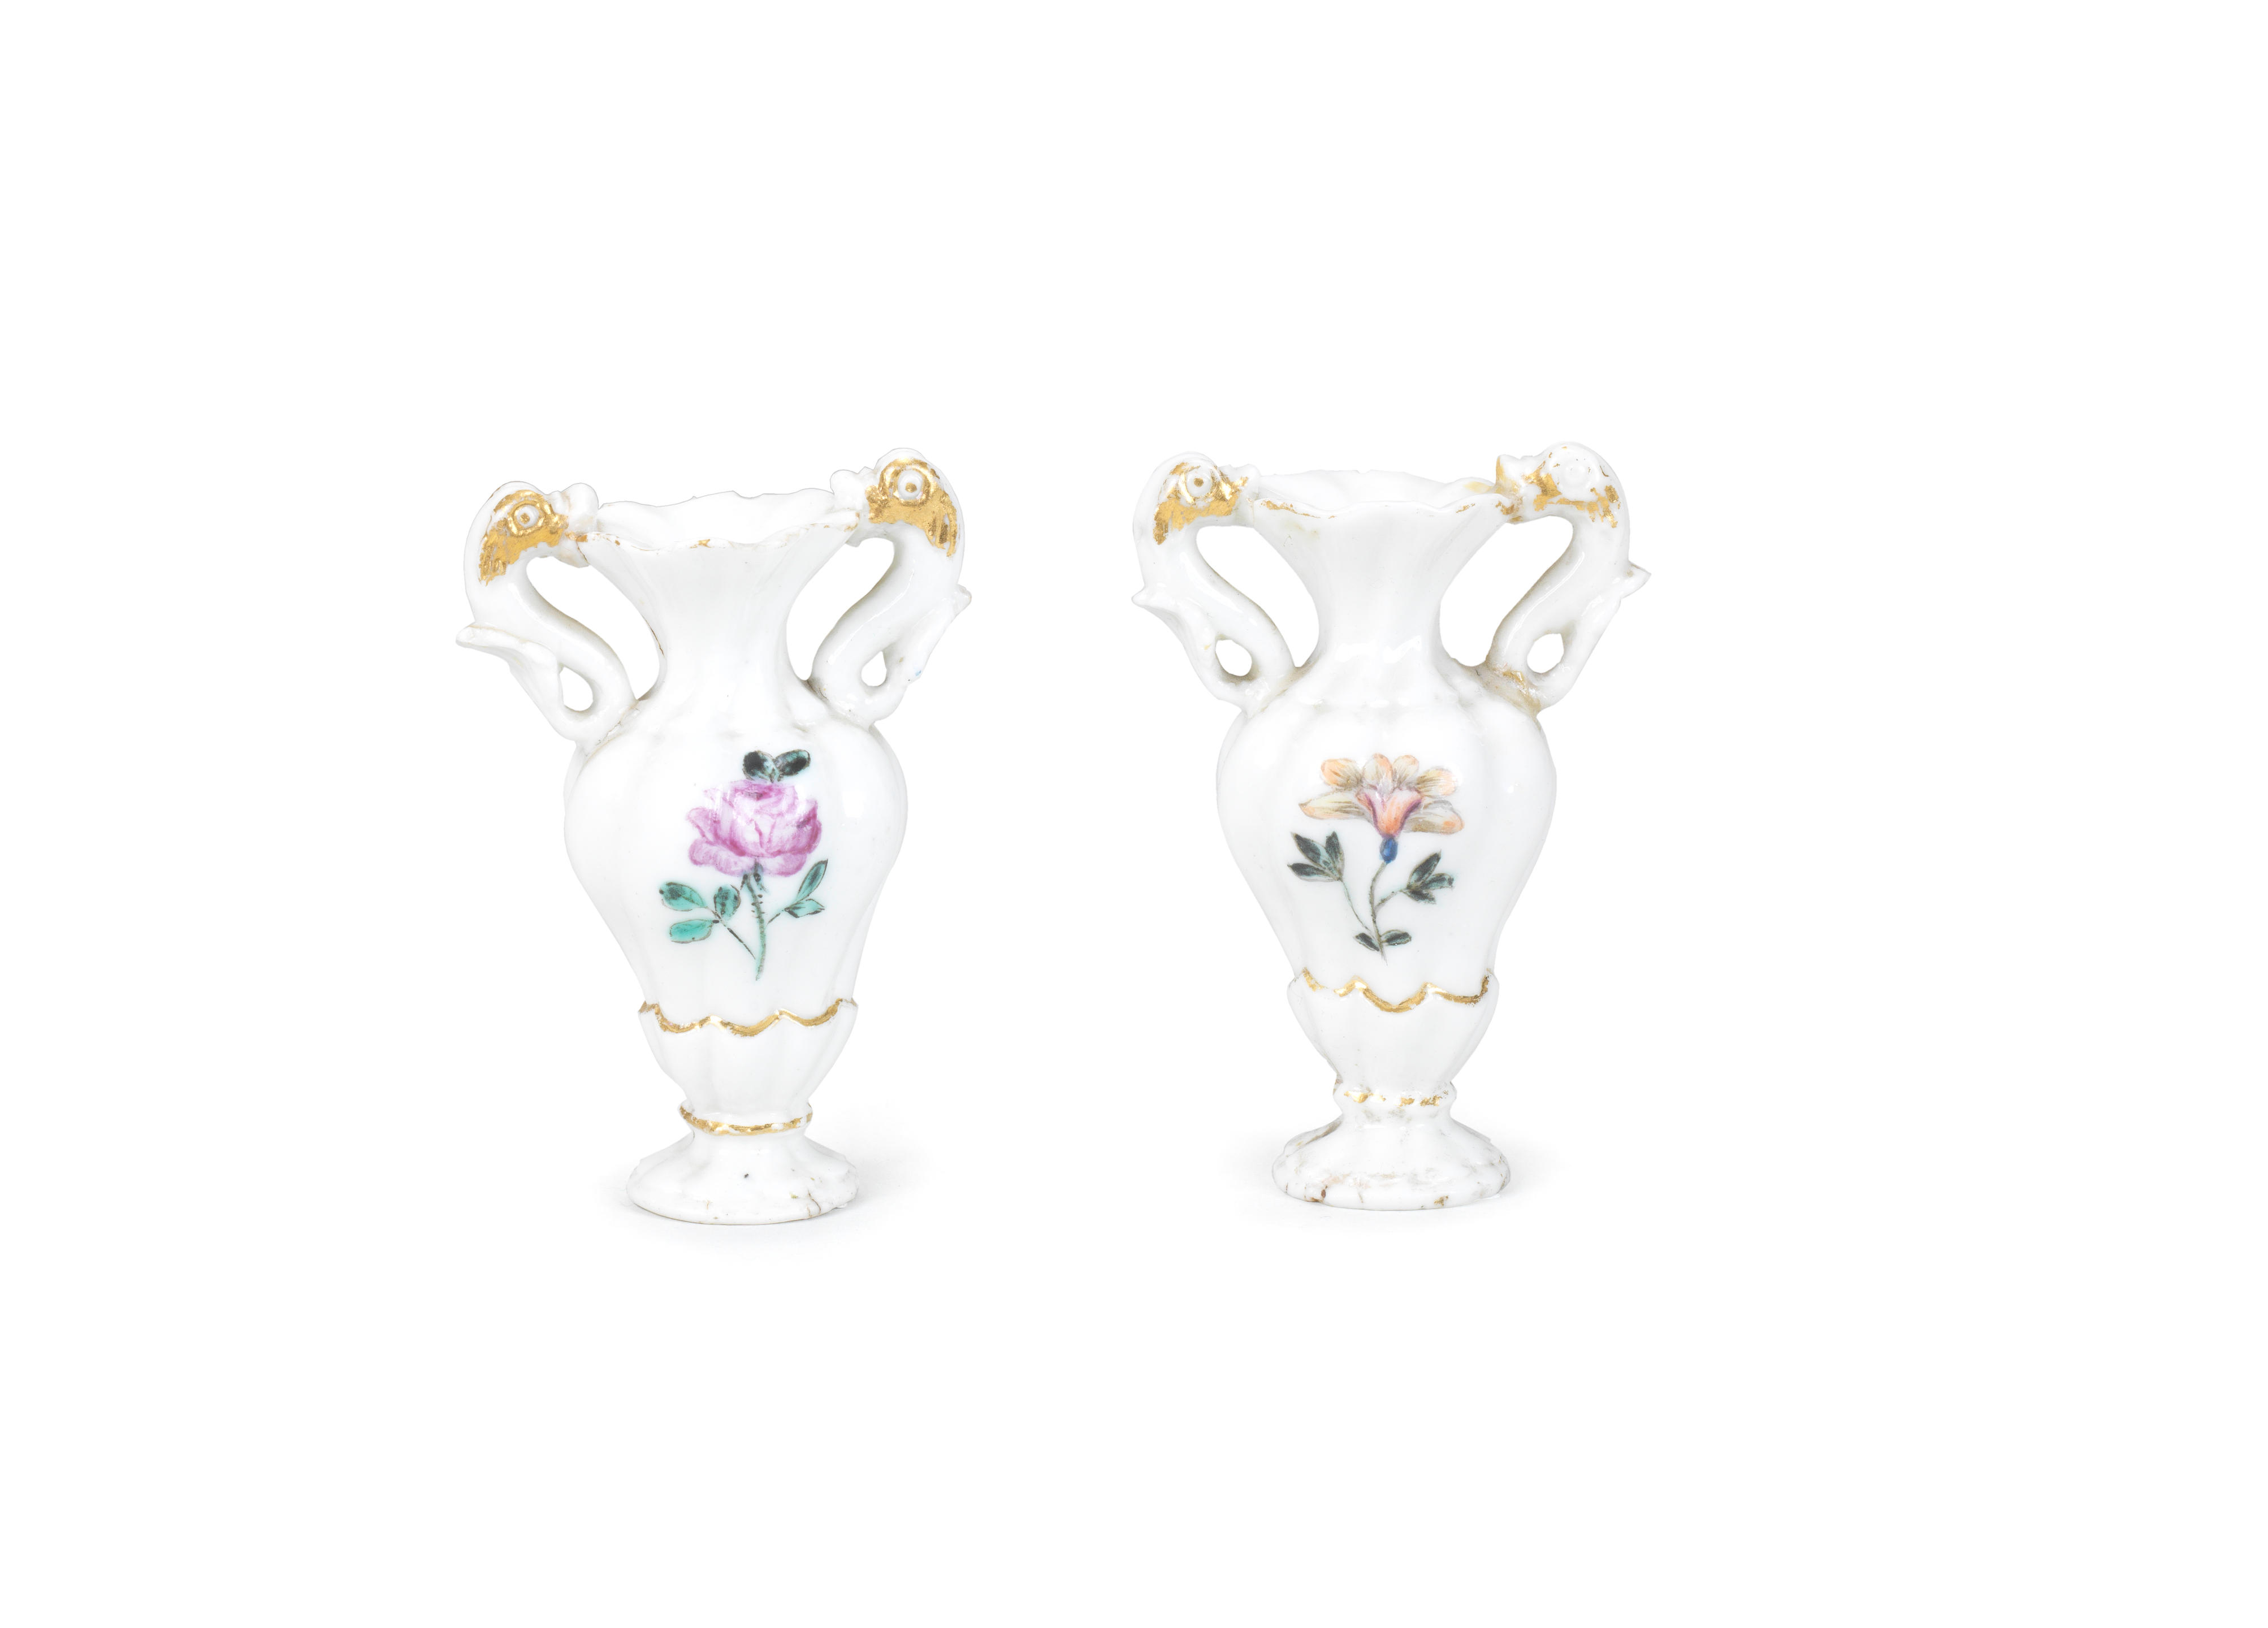 Two Capodimonte miniature vases